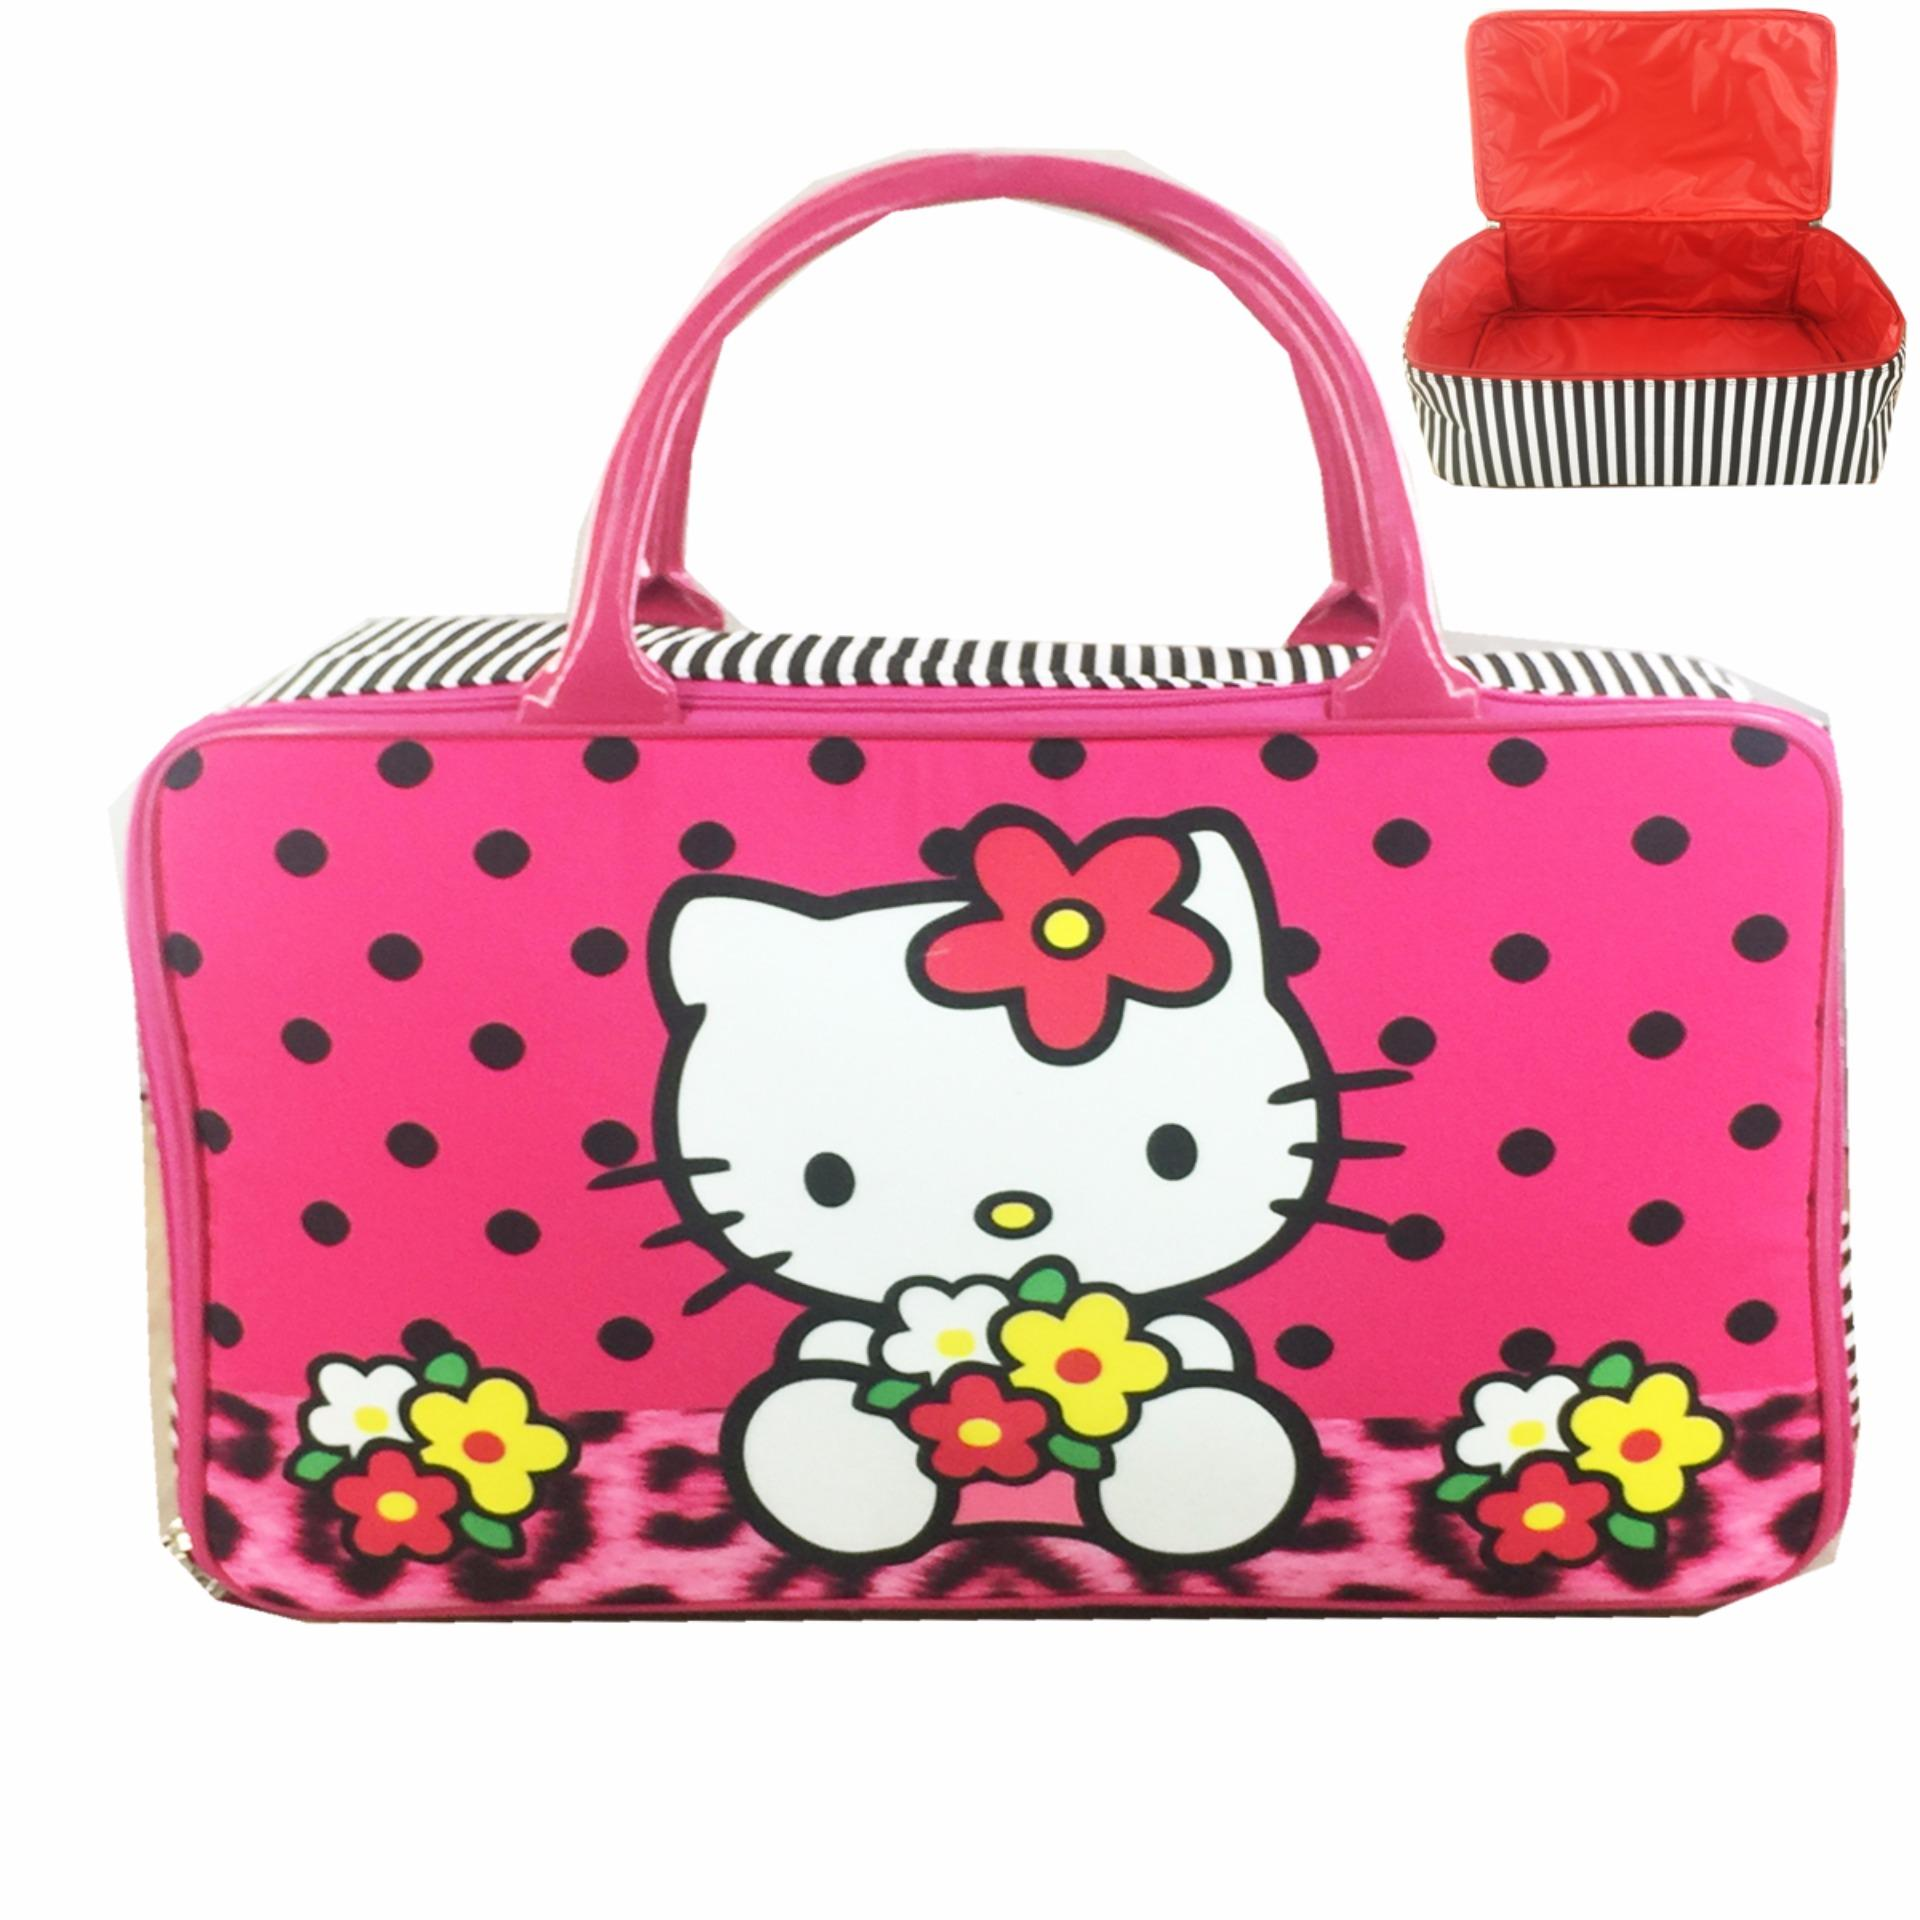 Strips Source Tsum Mickey Minnie And Friends Polkadot Source BGC Travel Bag Kanvas .